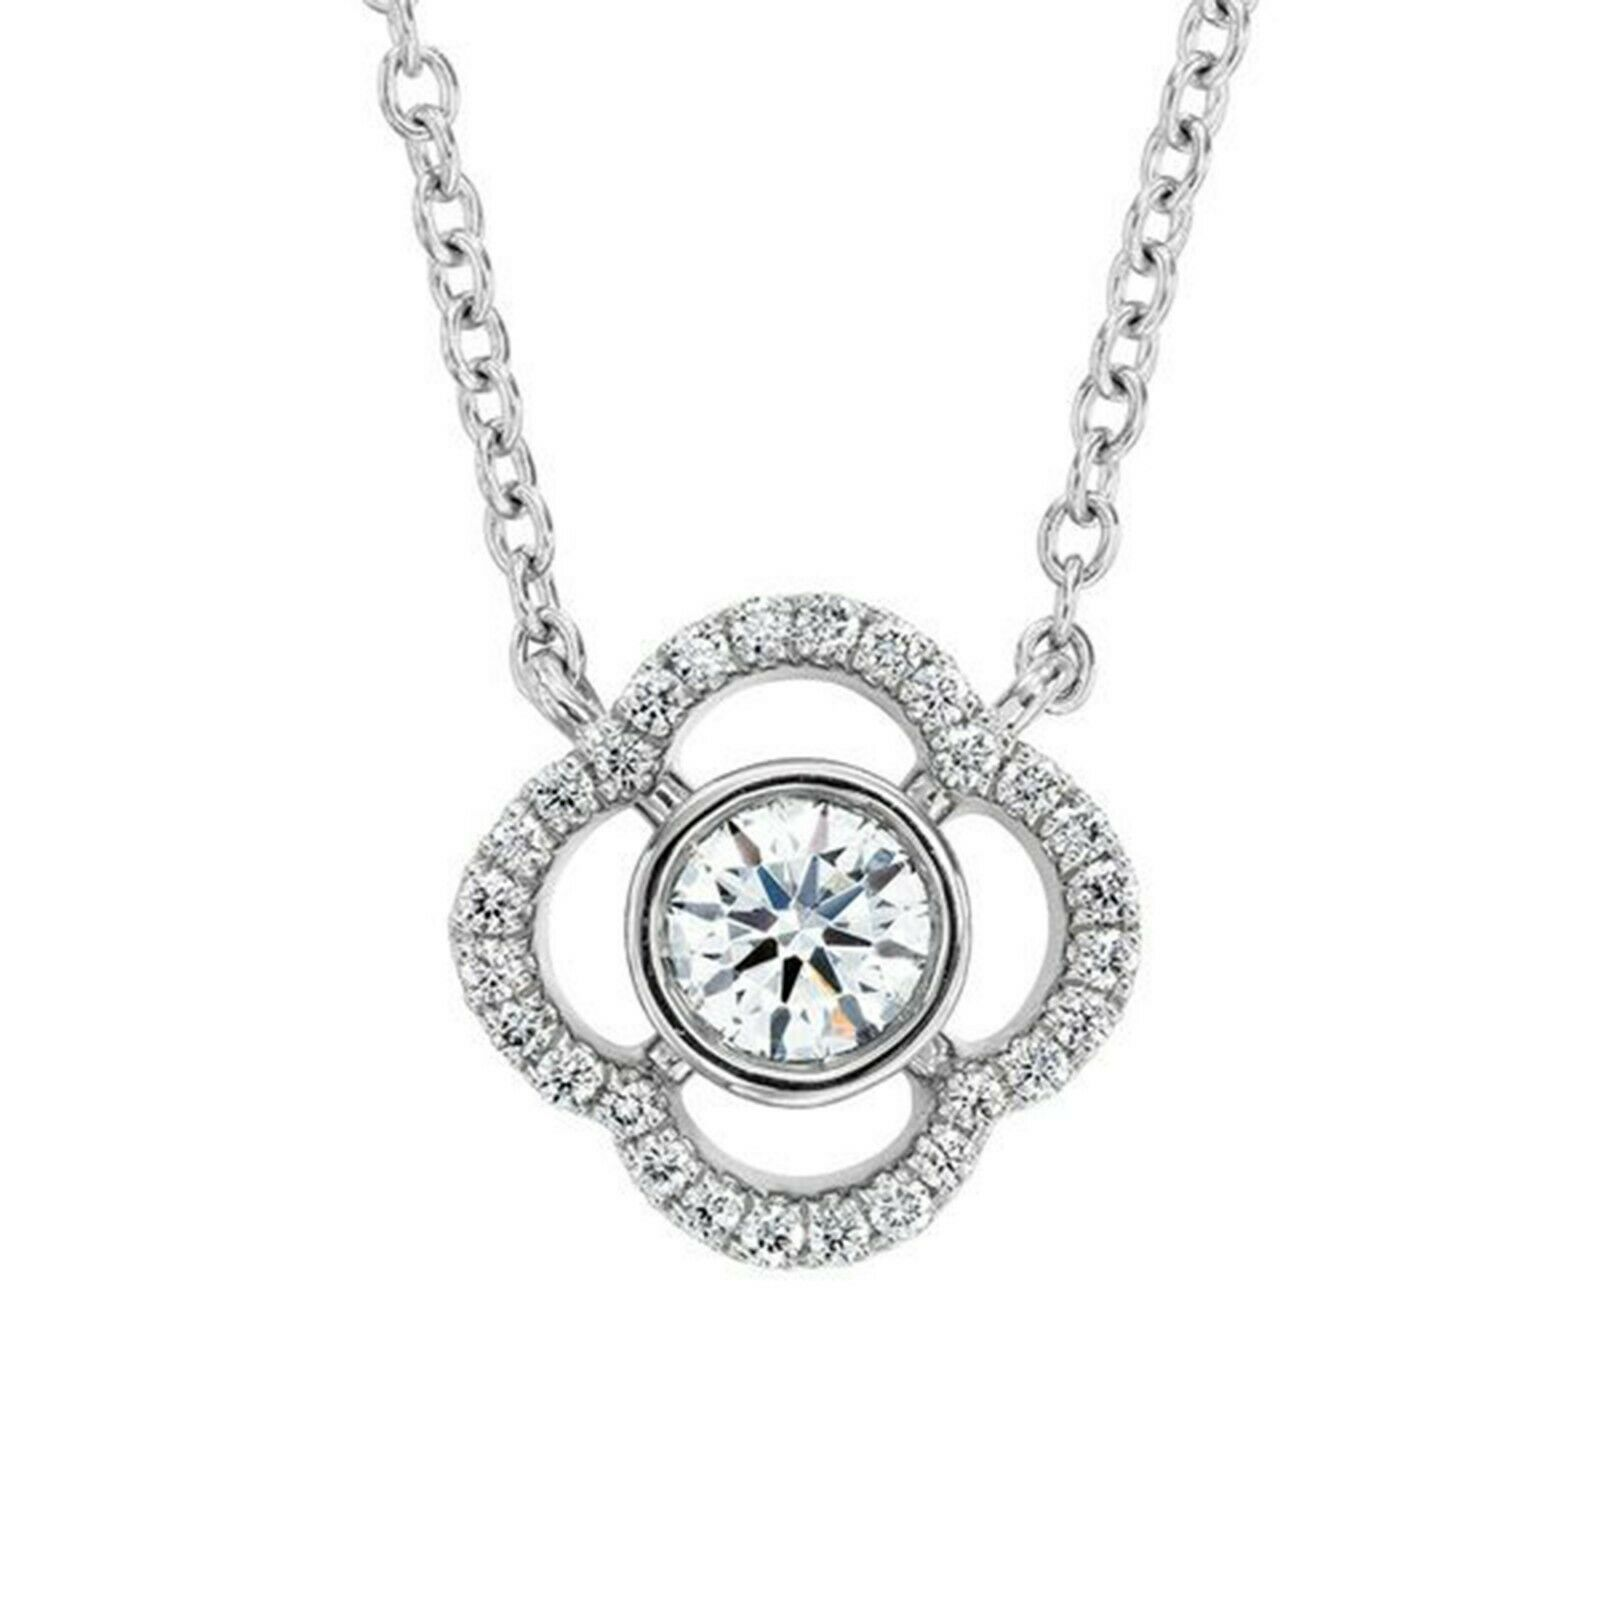 Primary image for 14K White Gold Finish Round D/VVS1 Diamond Exquisite Four Leaf Clover Necklace